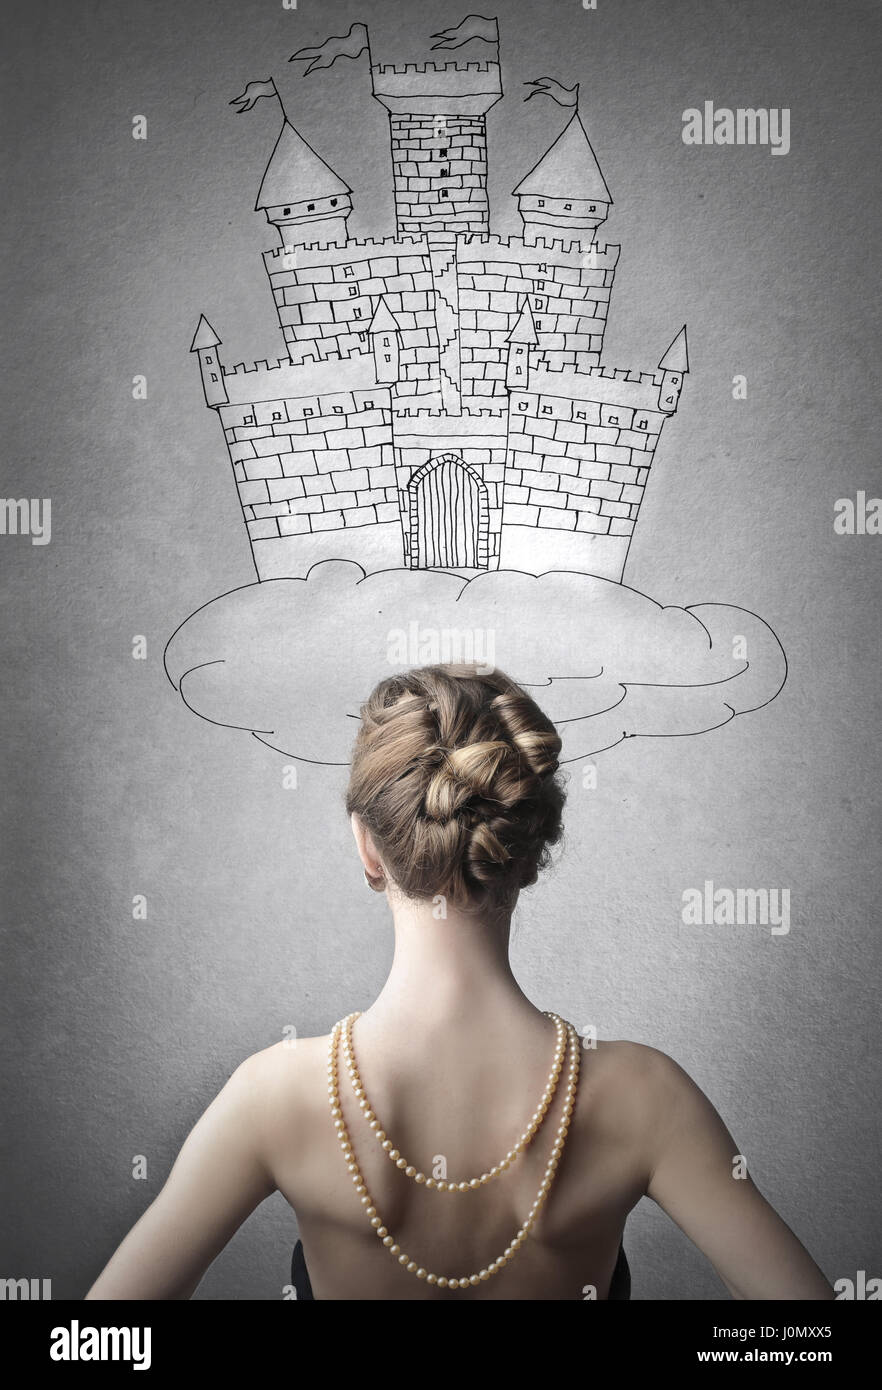 Woman in front of drawn castle - Stock Image